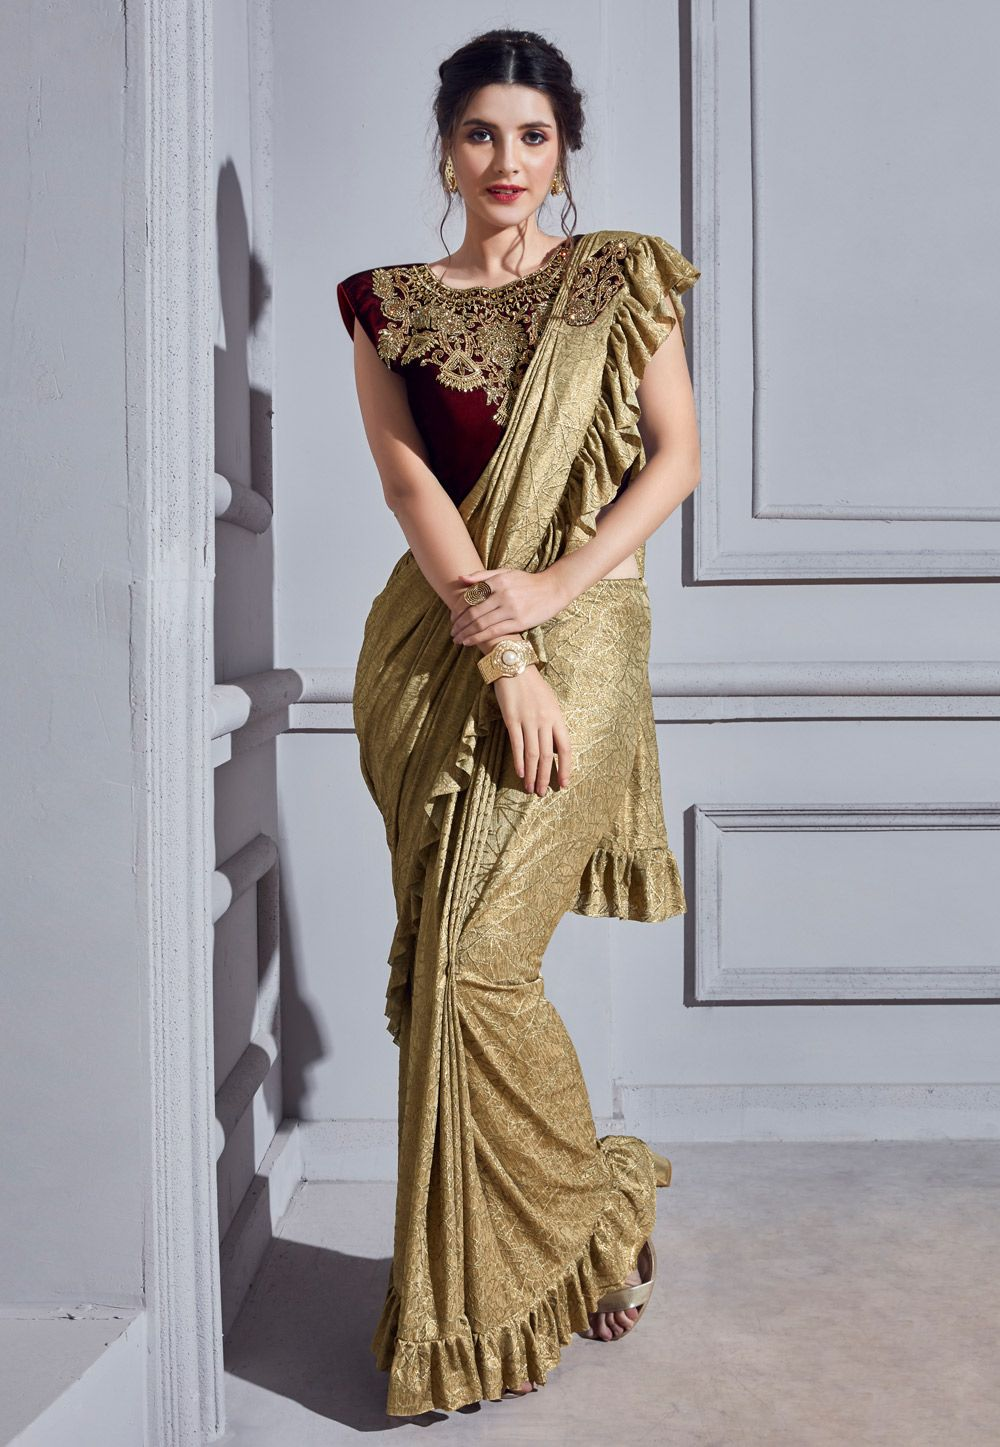 de38ccfe8d Buy Beige Lycra Frilled Party Wear Saree 160874 with blouse online at  lowest price from vast collection of sarees at Indianclothstore.com.